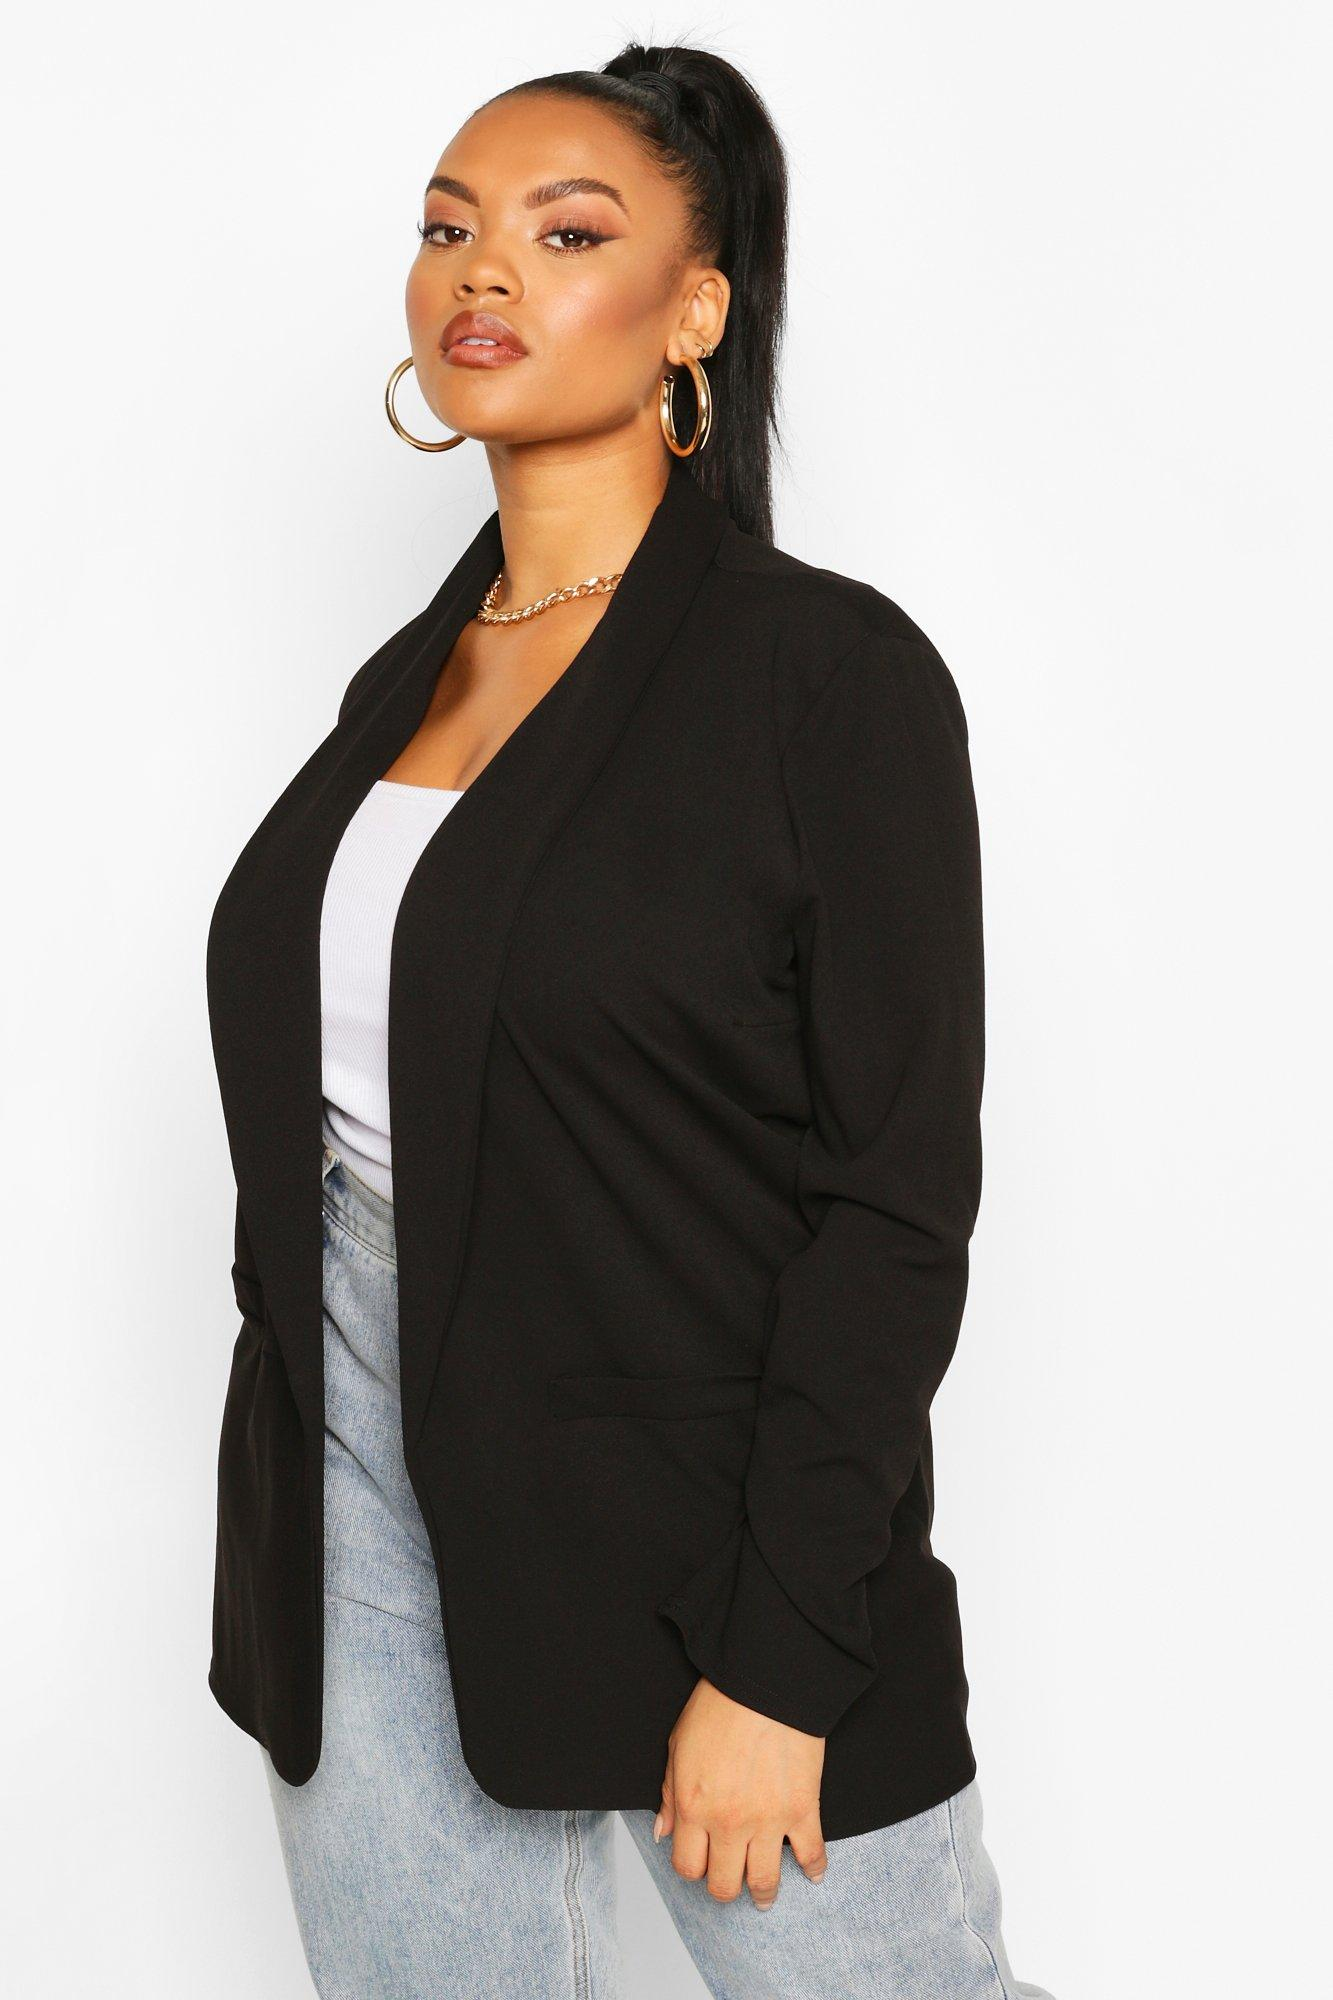 boohoo Womens Plus Lapel Ruched Cuff Blazer - Black - 18, Black